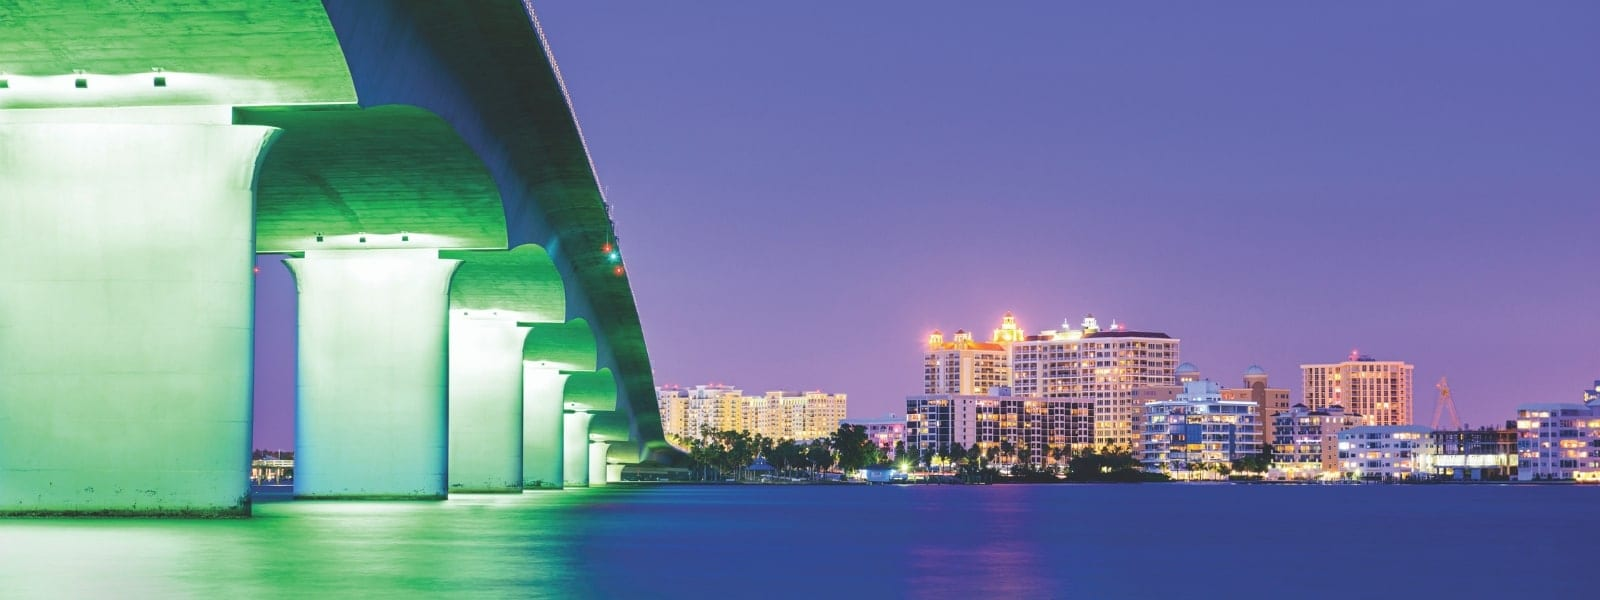 The Sarasota bay at sunset lit up with the bottom of the bridge on the left and the city lights straight ahead